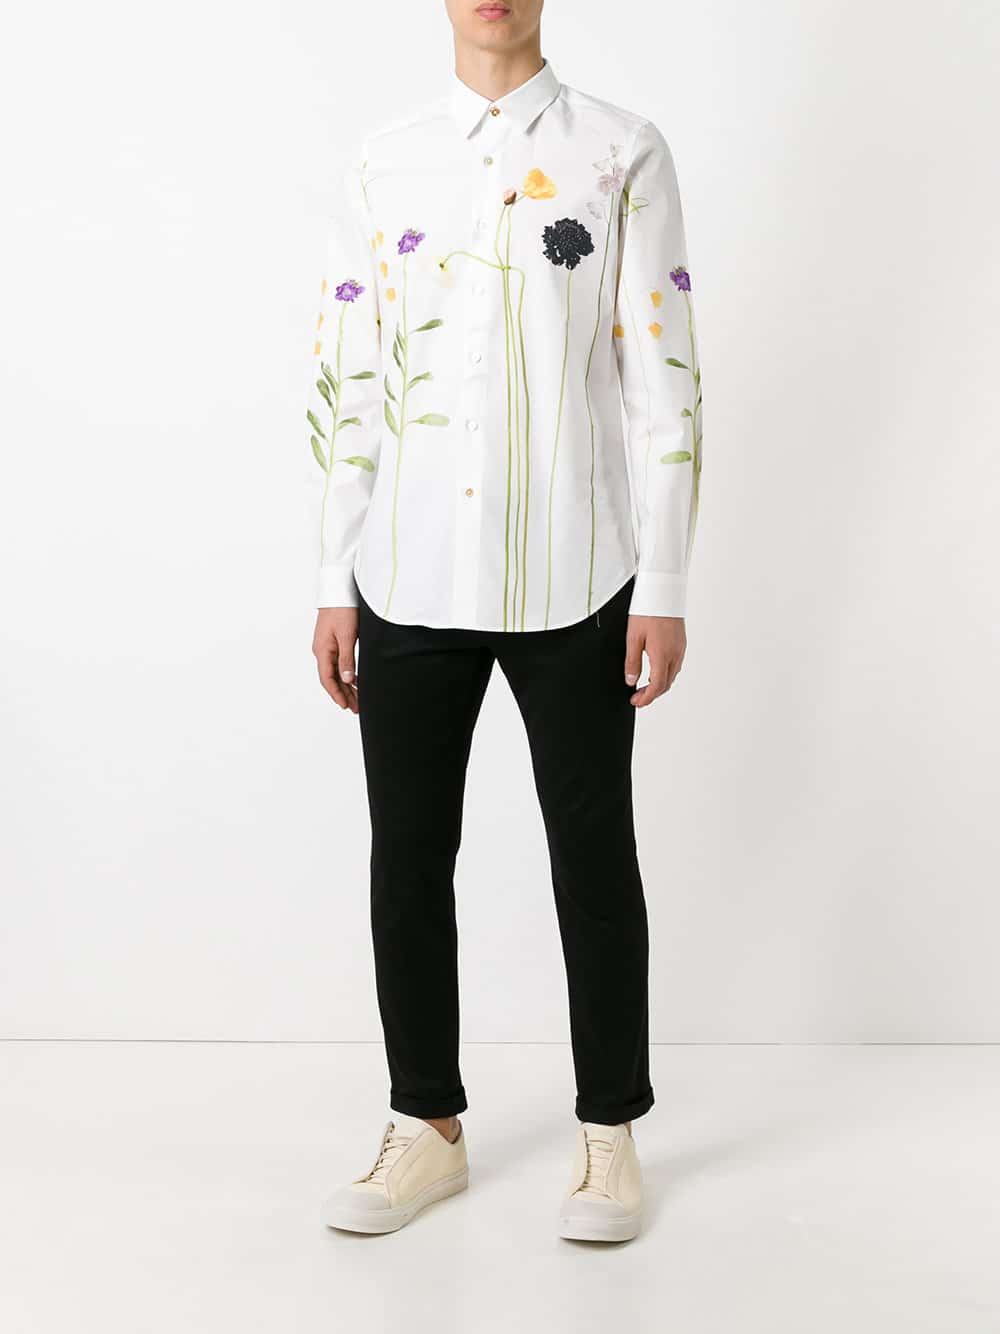 PAUL SMITH Floral Print Shirt Look